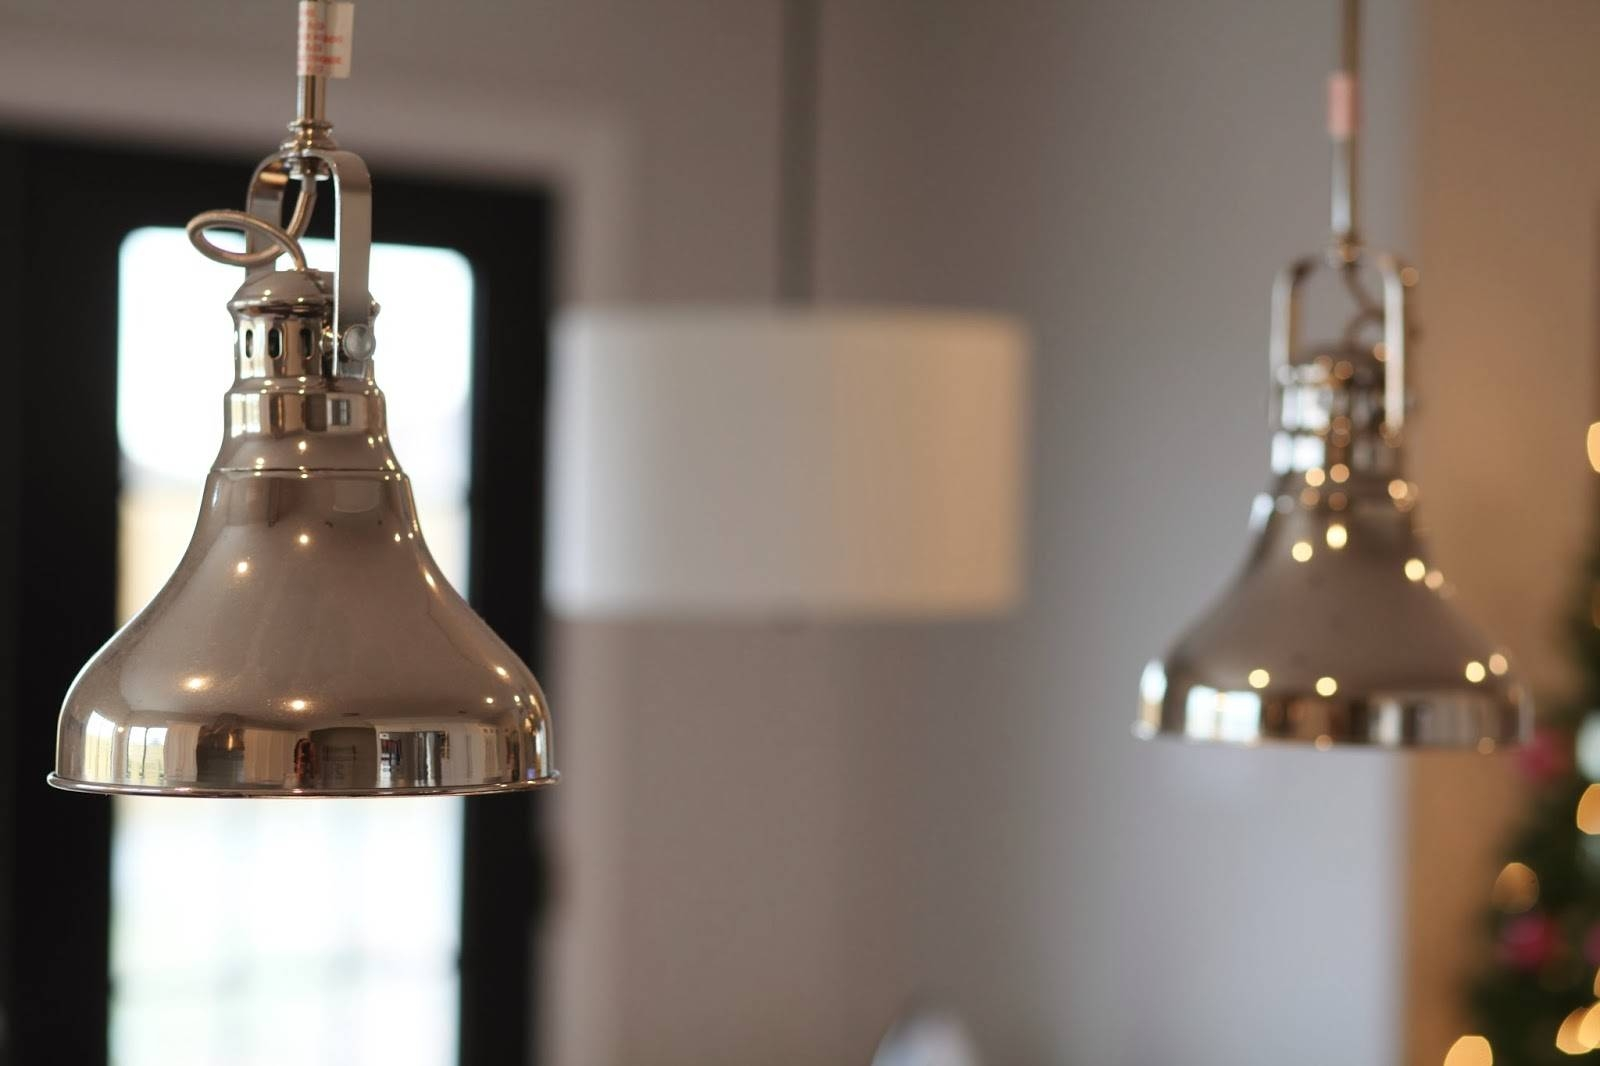 Stainless Steel Pendant Light Fixtures – Baby Exit With Regard To Stainless Steel Pendant Lighting (View 3 of 15)